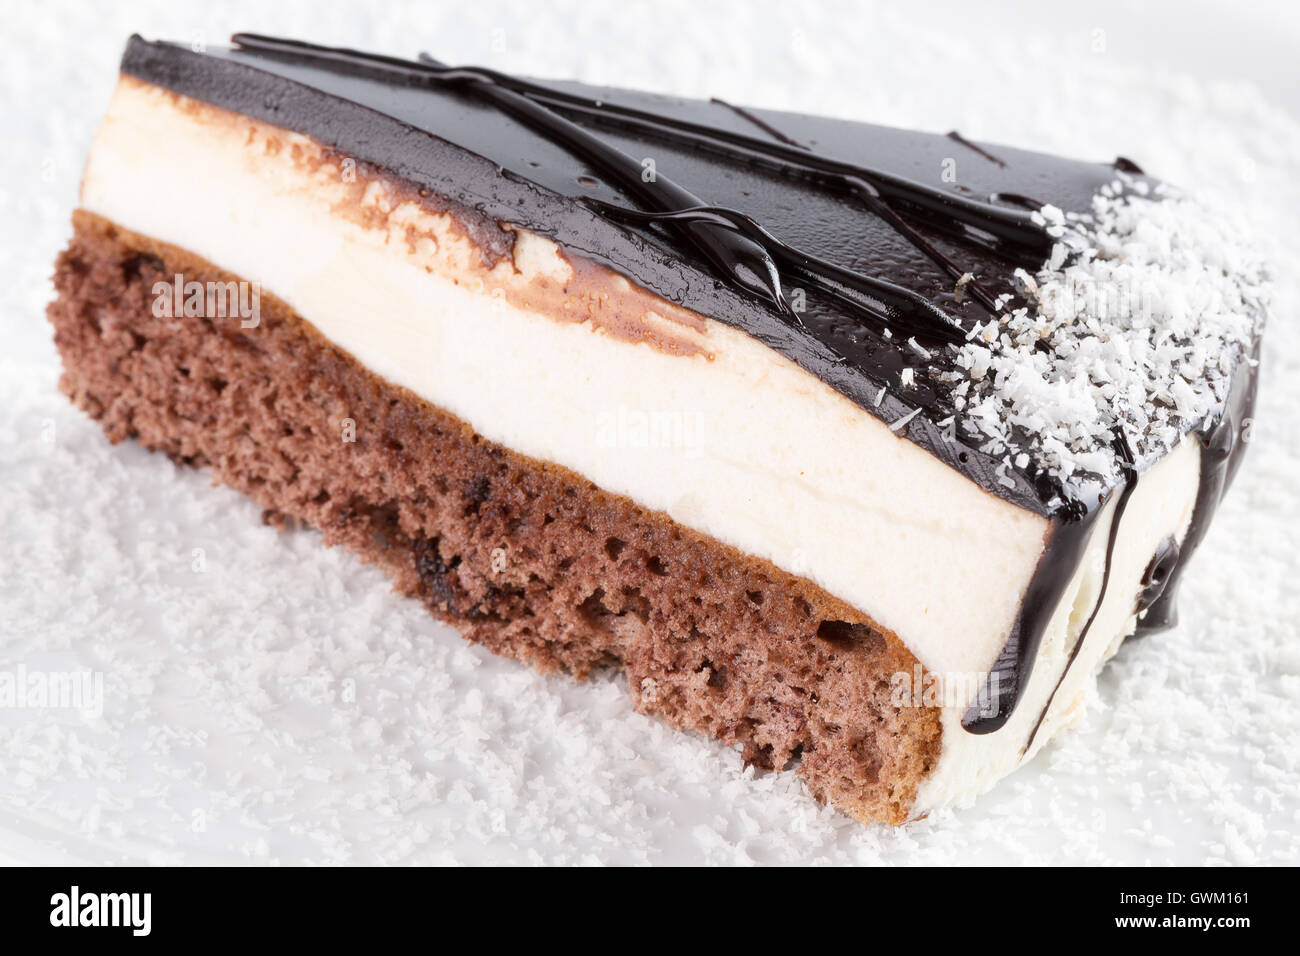 chocolate cheese cake on white plate. - Stock Image